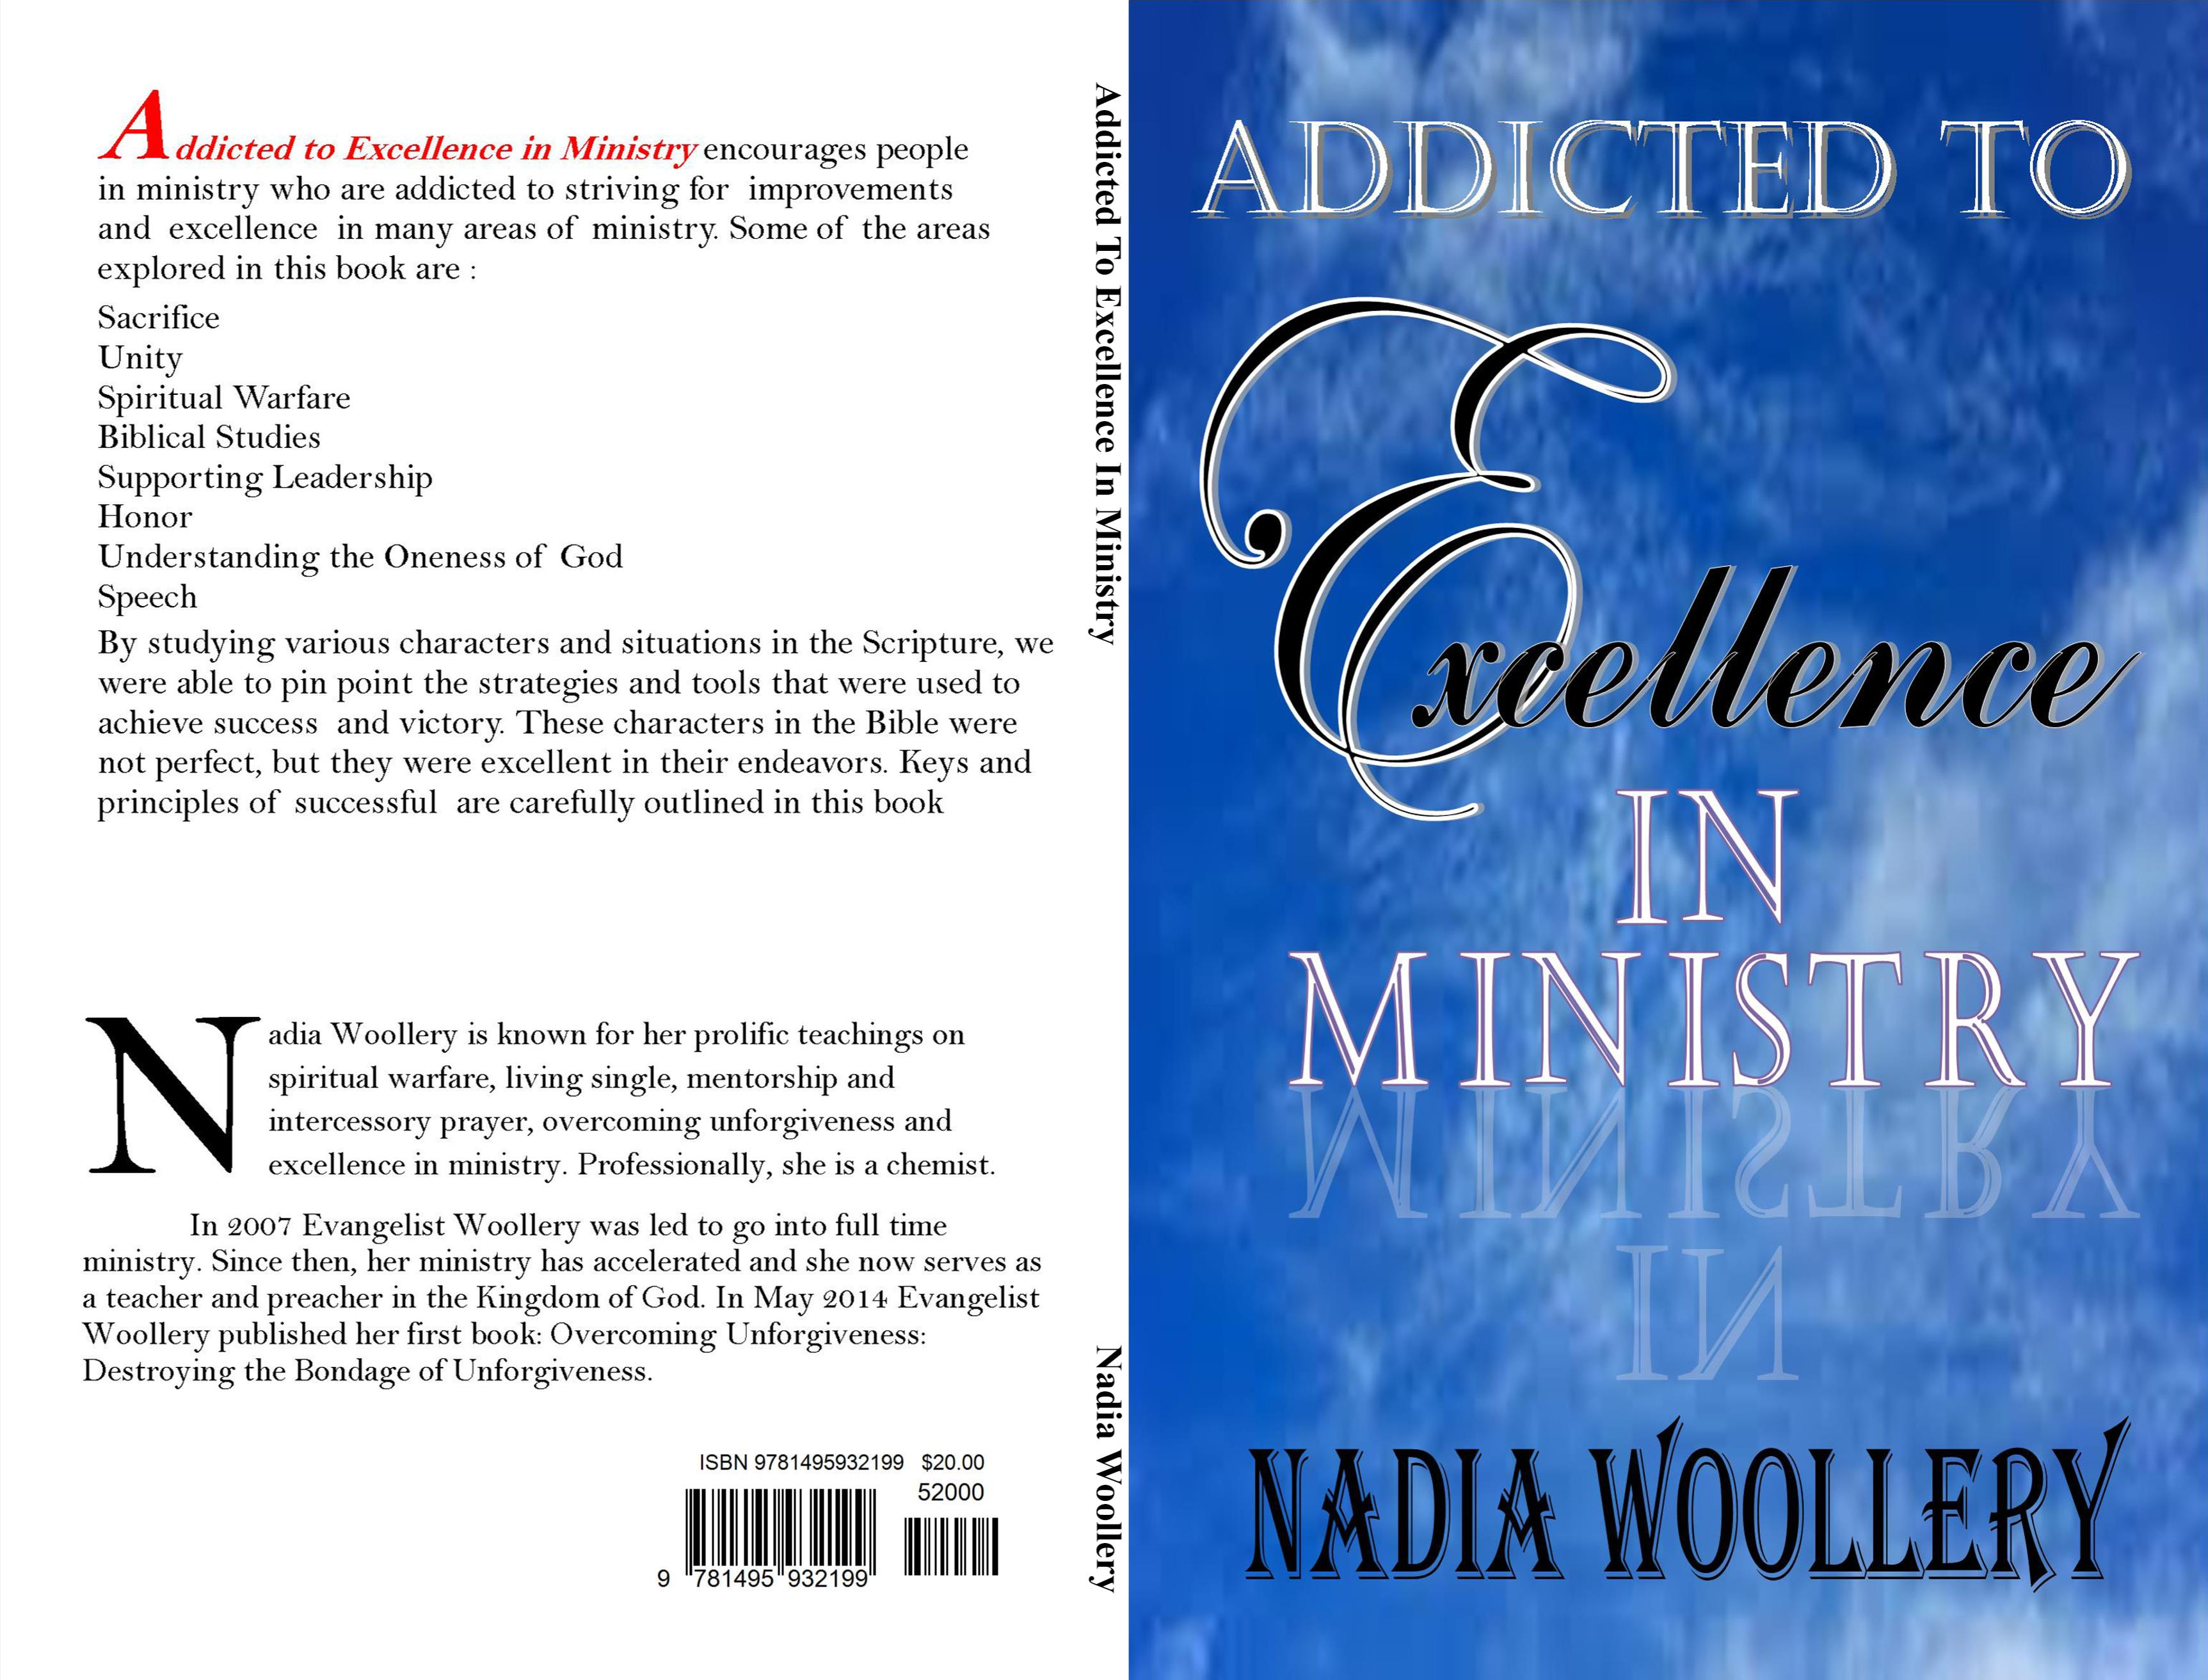 Addicted to Excellence in Ministry: Volume 1 cover image